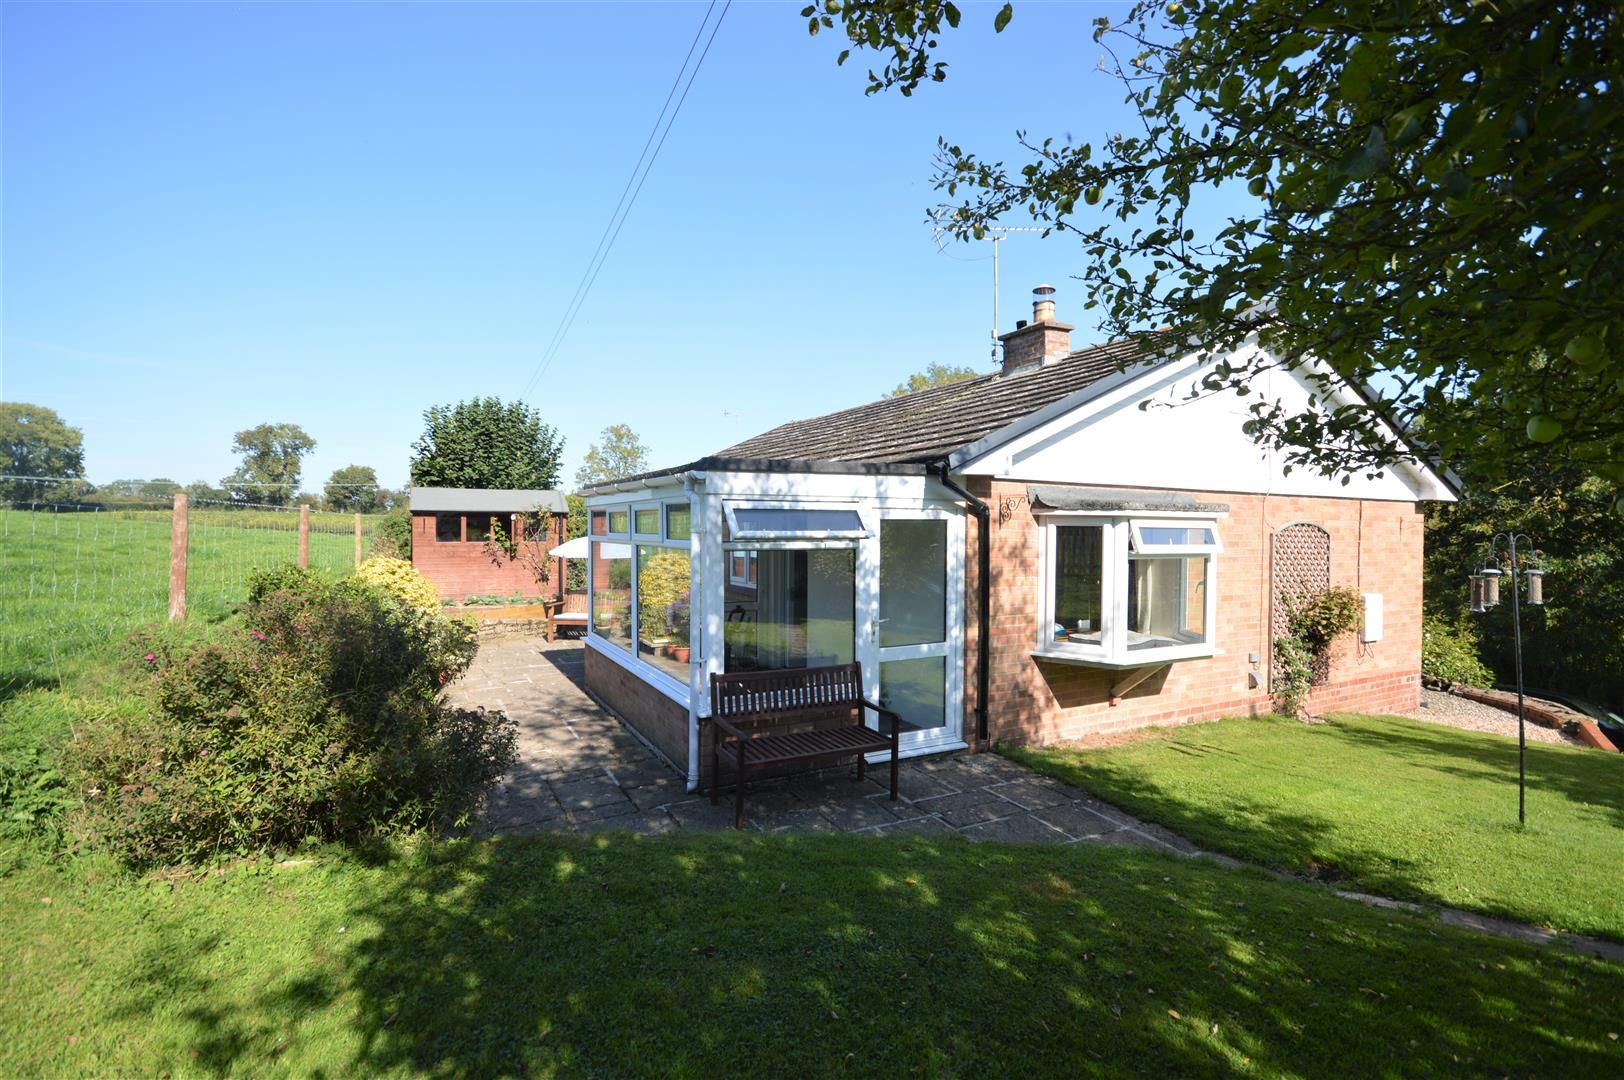 2 bed detached-bungalow for sale in Dilwyn 15